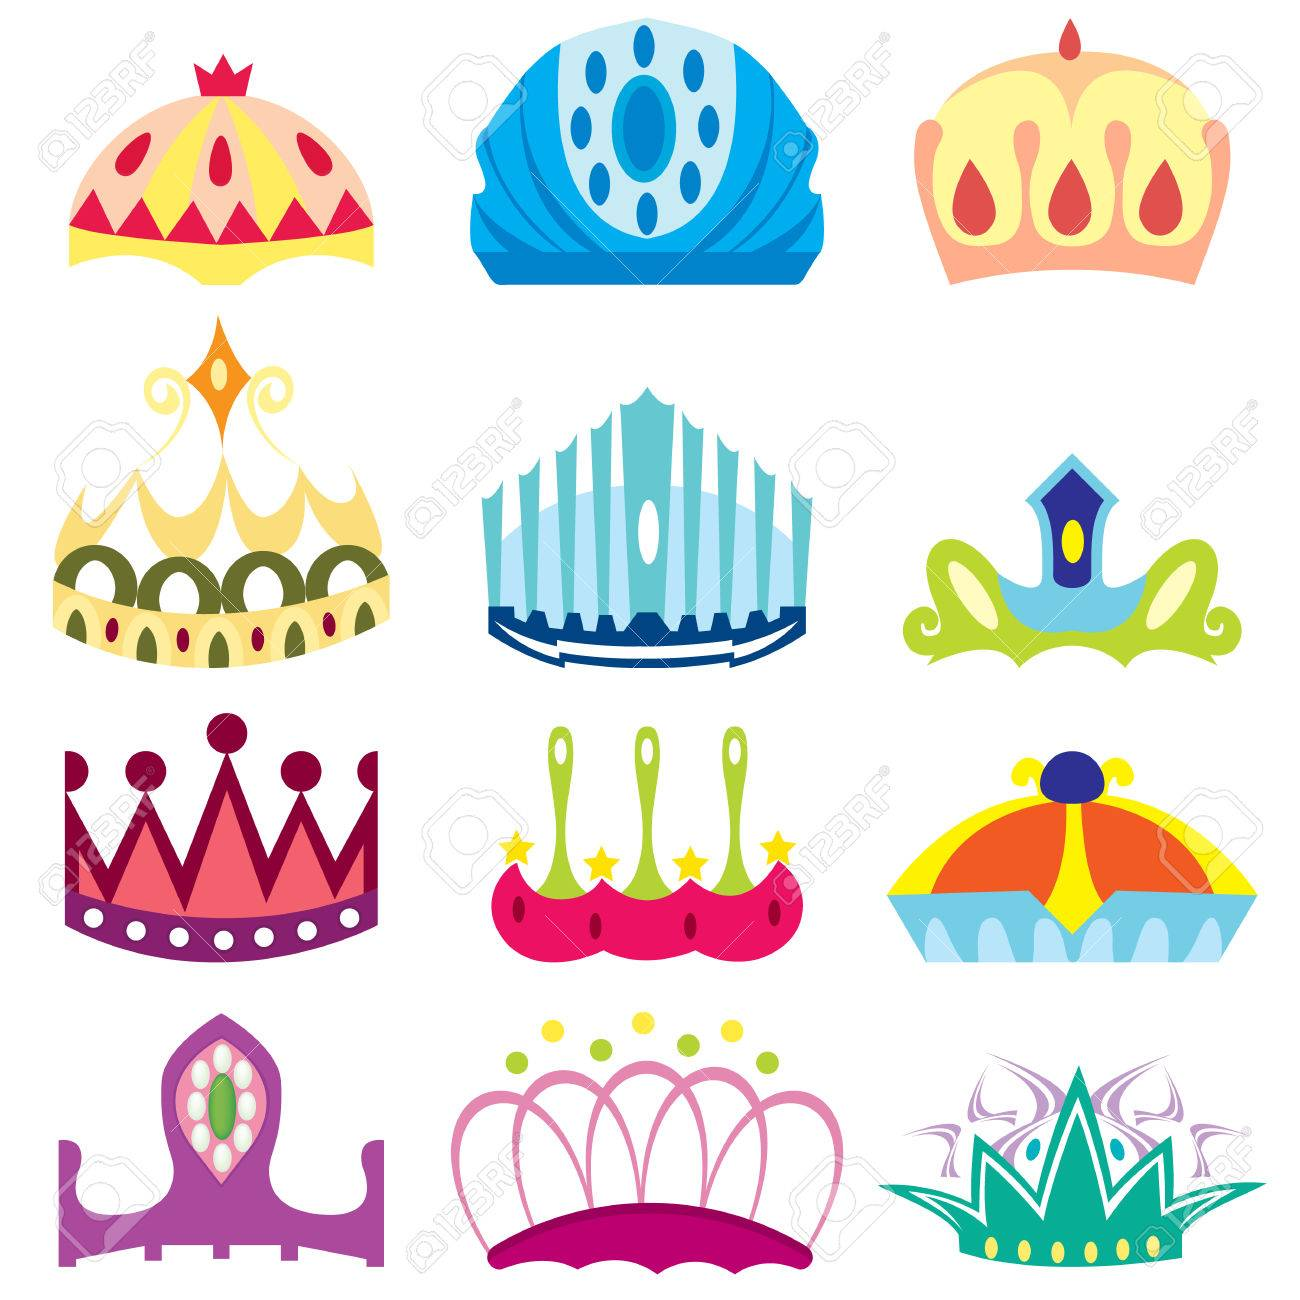 Cartoon Crown With Gems Isolated On White Background Royalty Free Cliparts Vectors And Stock Illustration Image 26081364 Brand logo white font, silver crown, silver crown png clipart. 123rf com